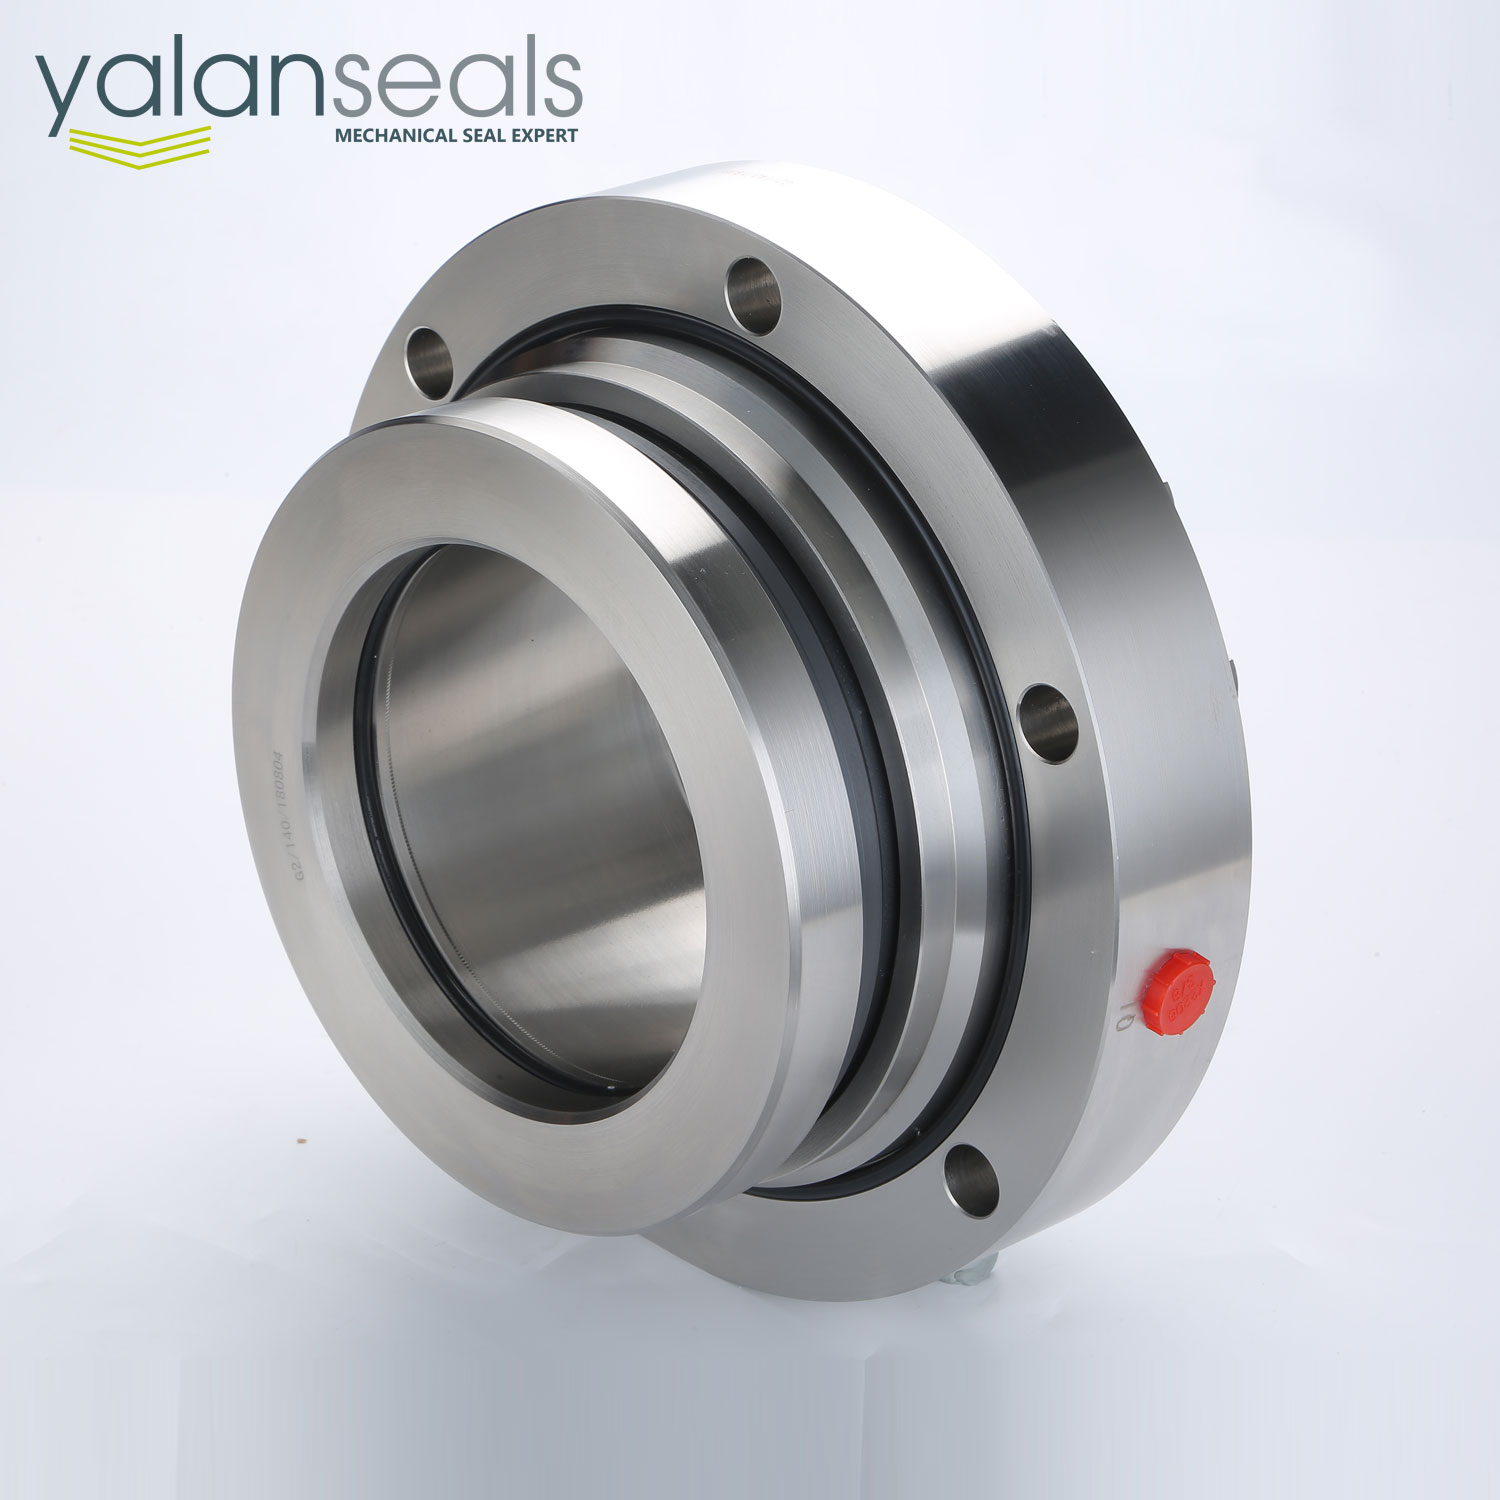 KTL Cartridge Mechanical Seal for Salt Slurry Pumps, Paper Pulp Pumps and Desulphurization Pumps